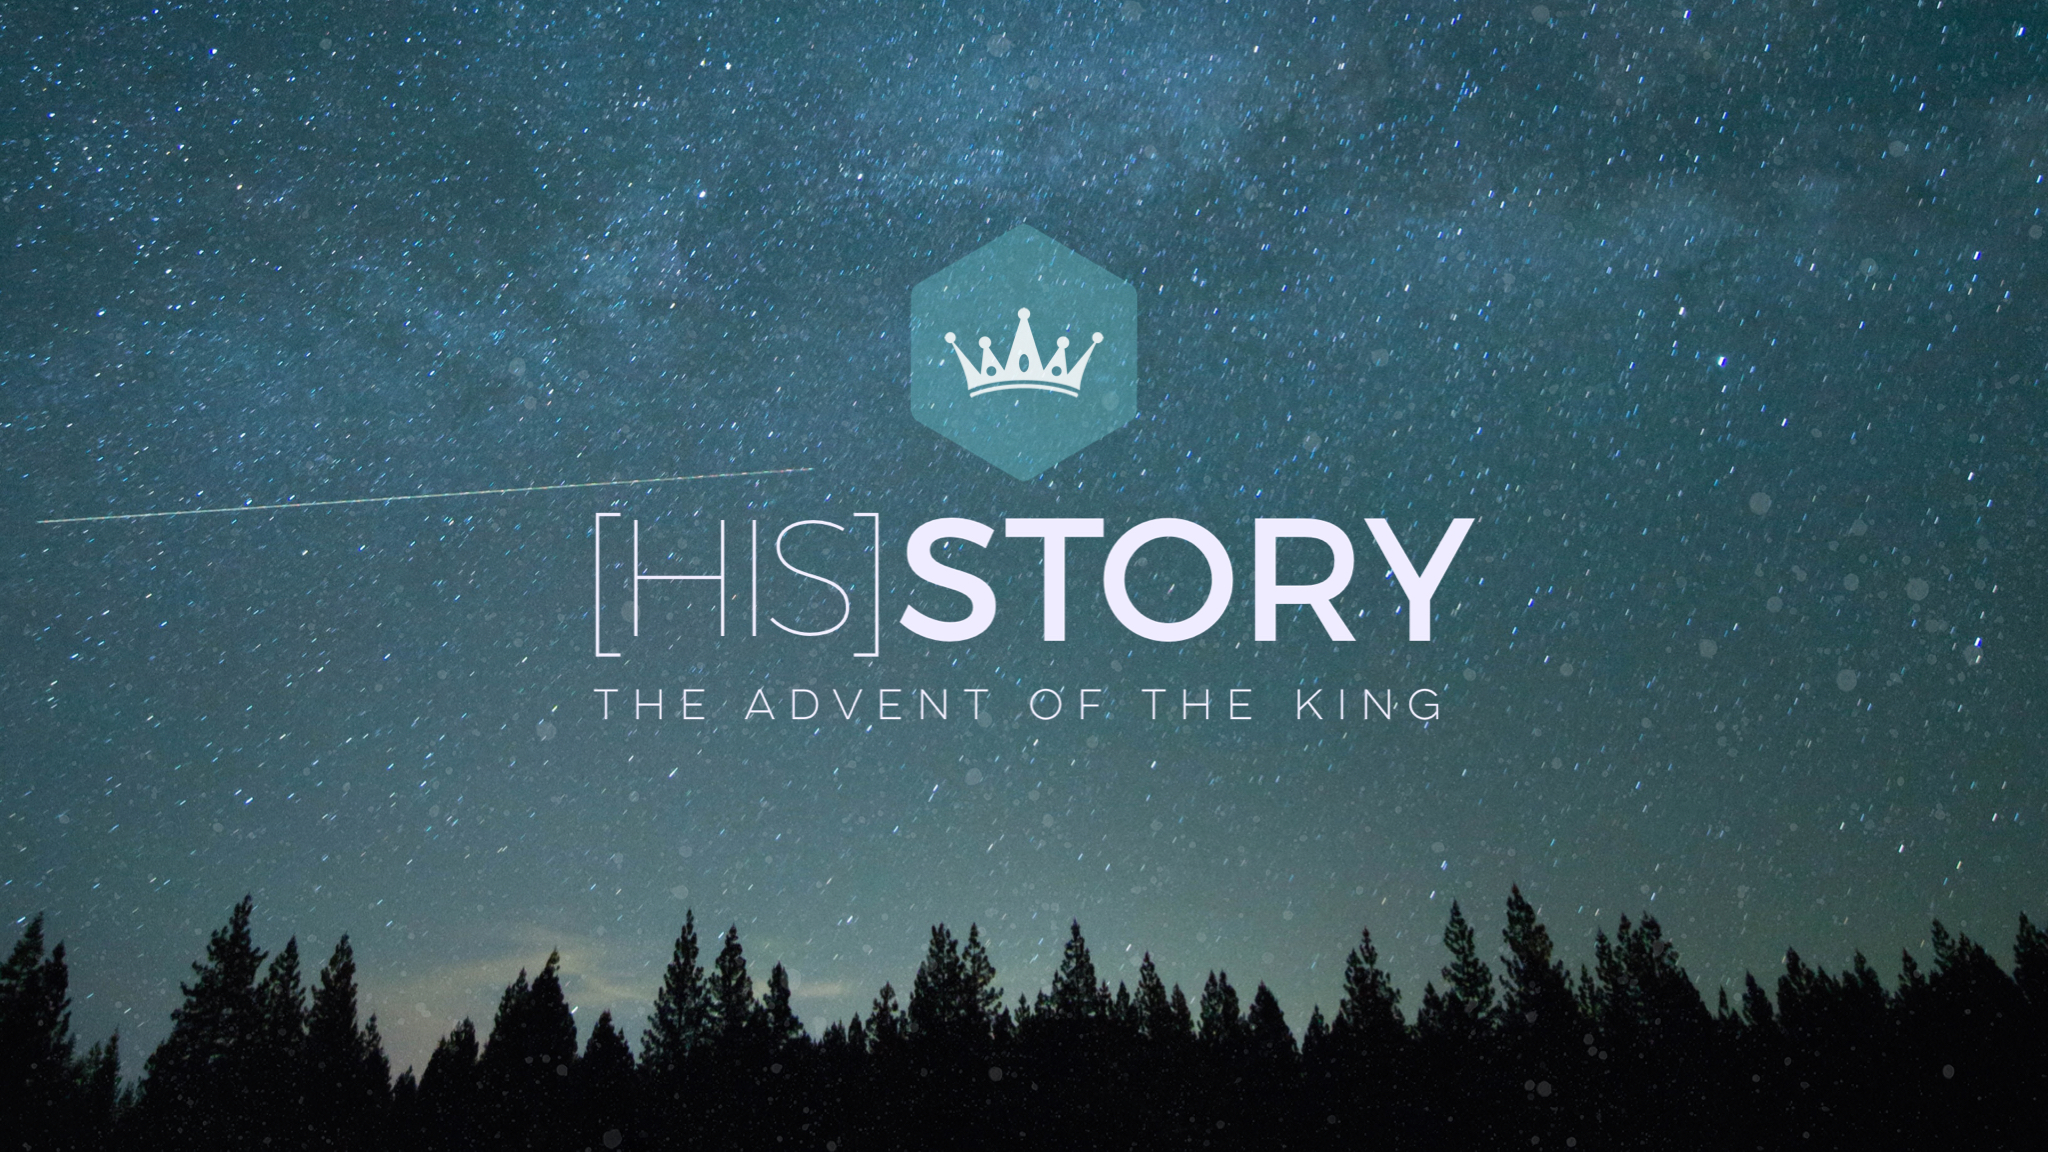 (His)Story